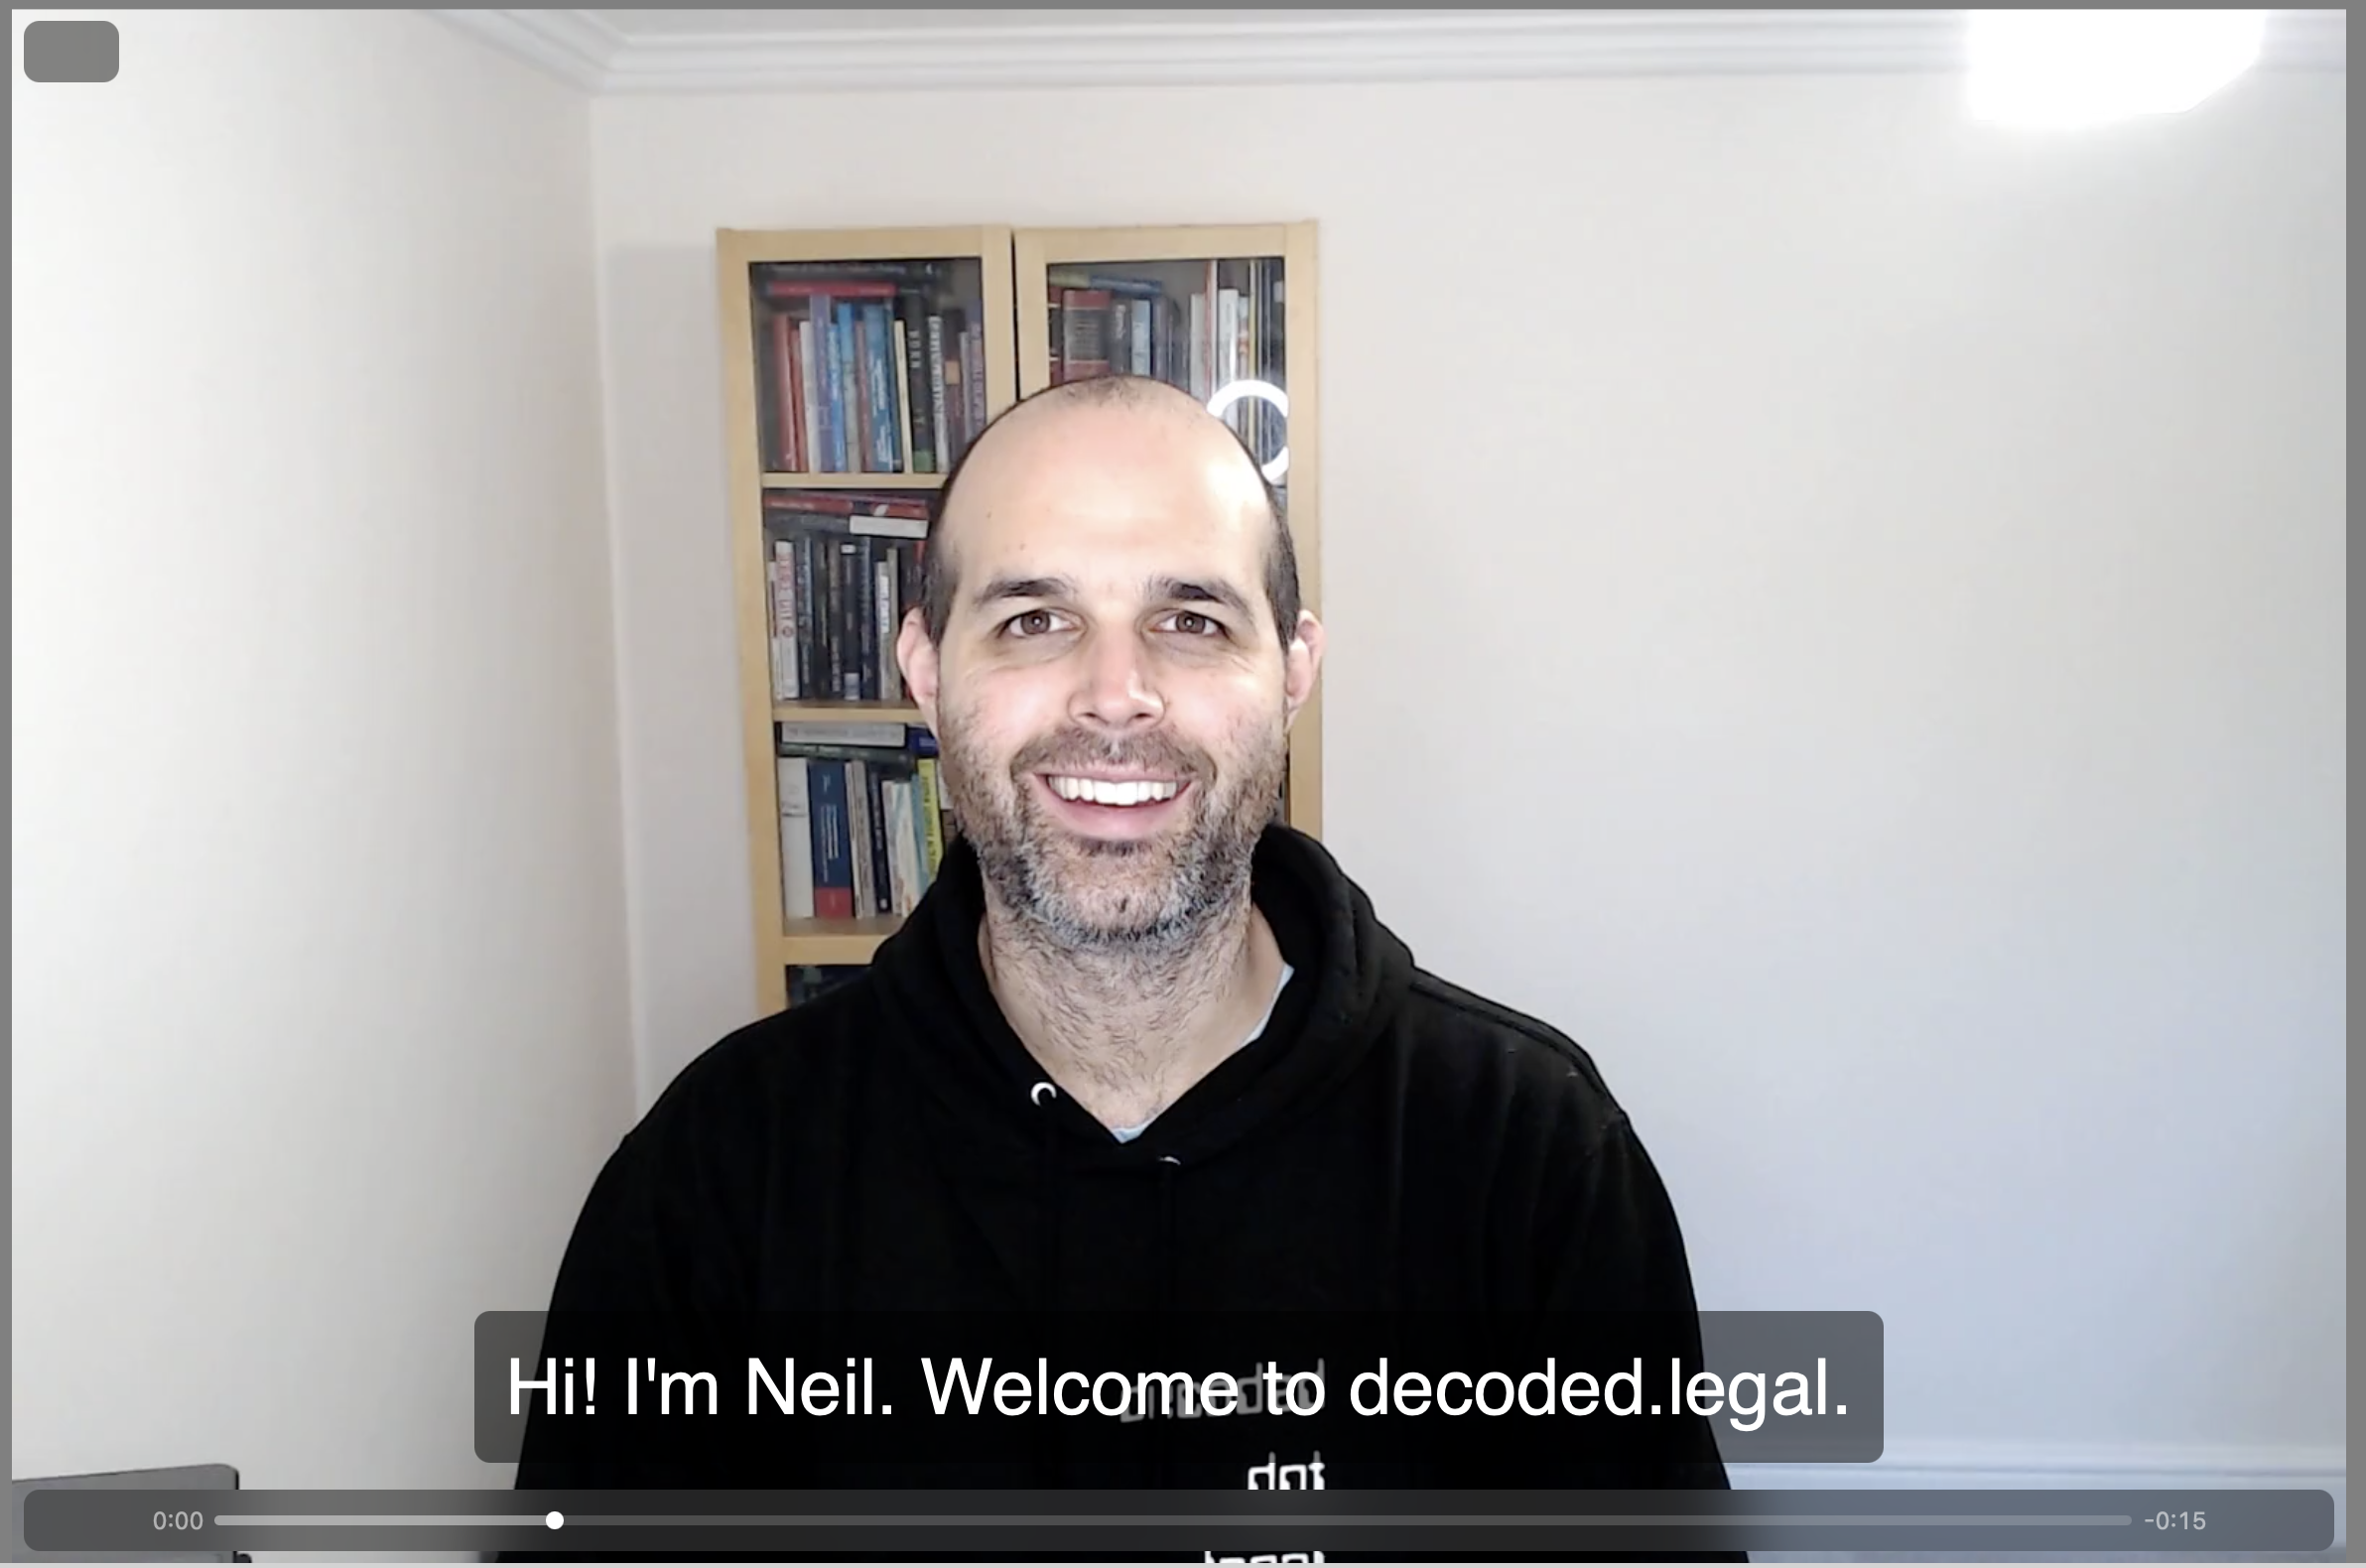 screenshot of html5 video on decoded.legal